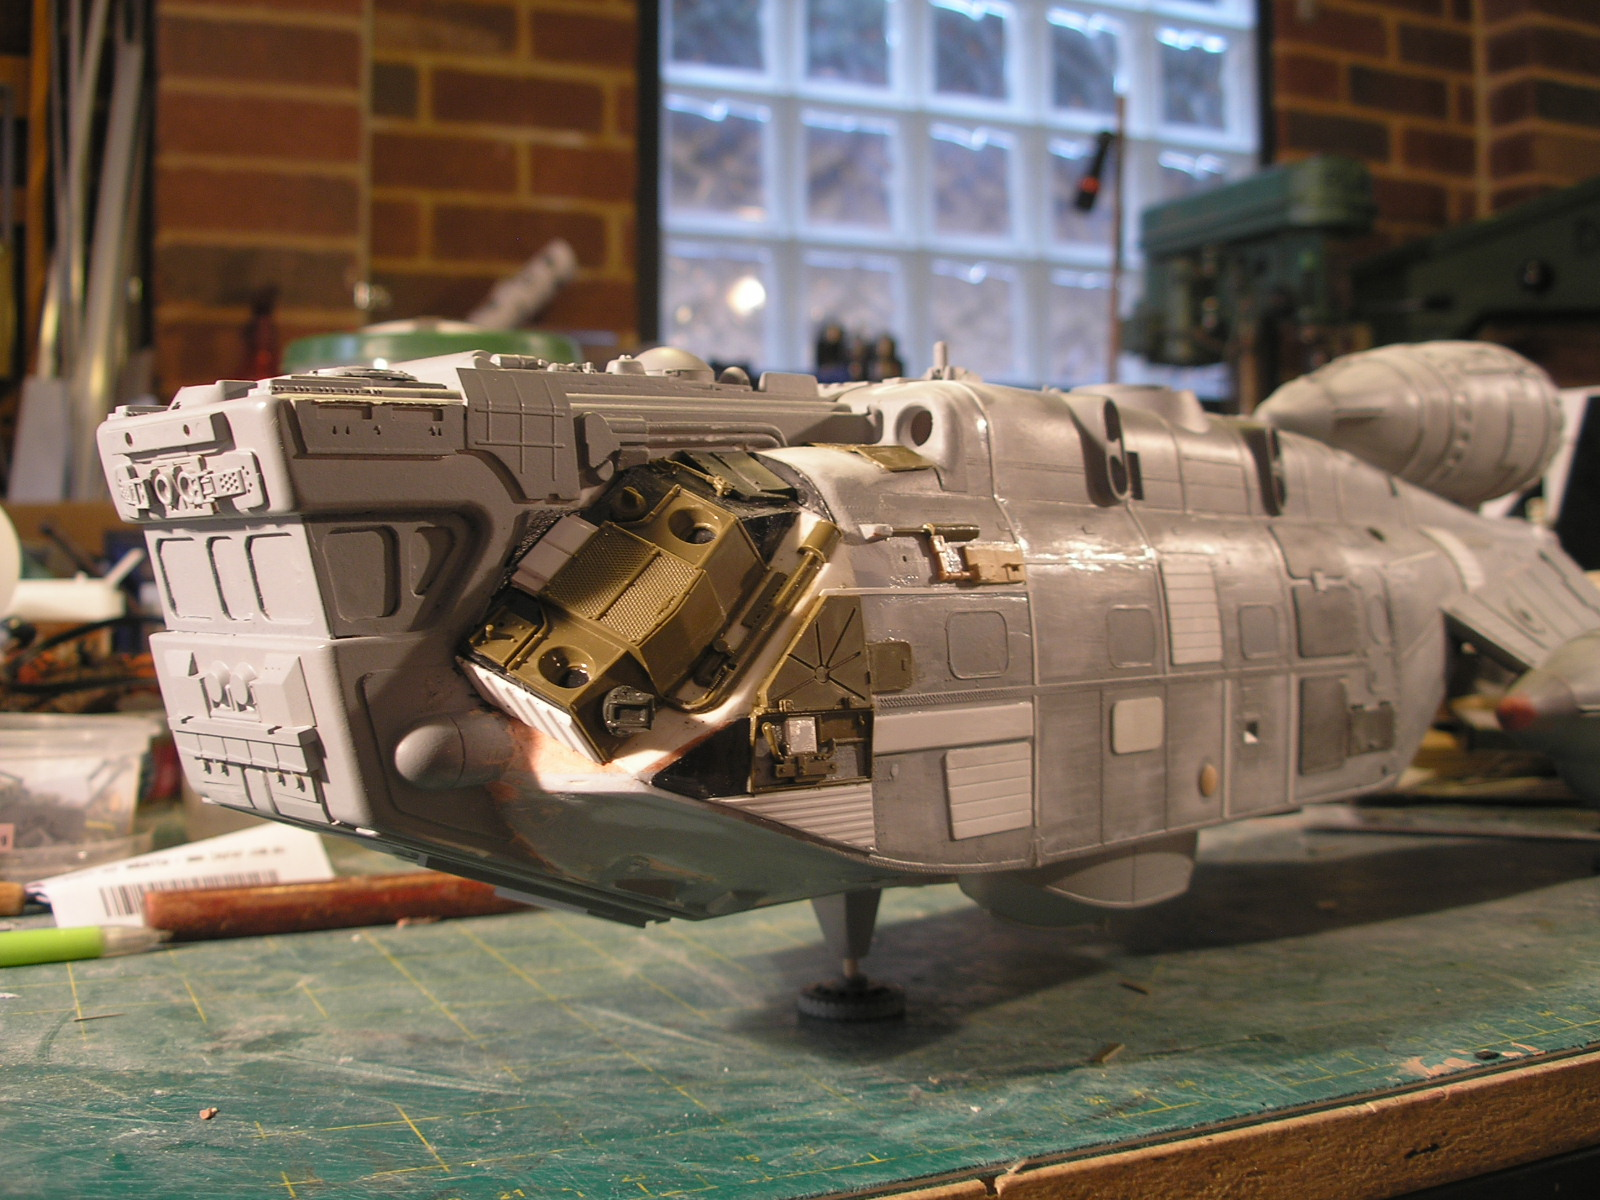 star cruiser rc helicopter with Kit Bash Shuttlecraft Part 4 on Showthread moreover 2012 10 01 archive together with 787 facts further 552746554244835873 in addition 395006.